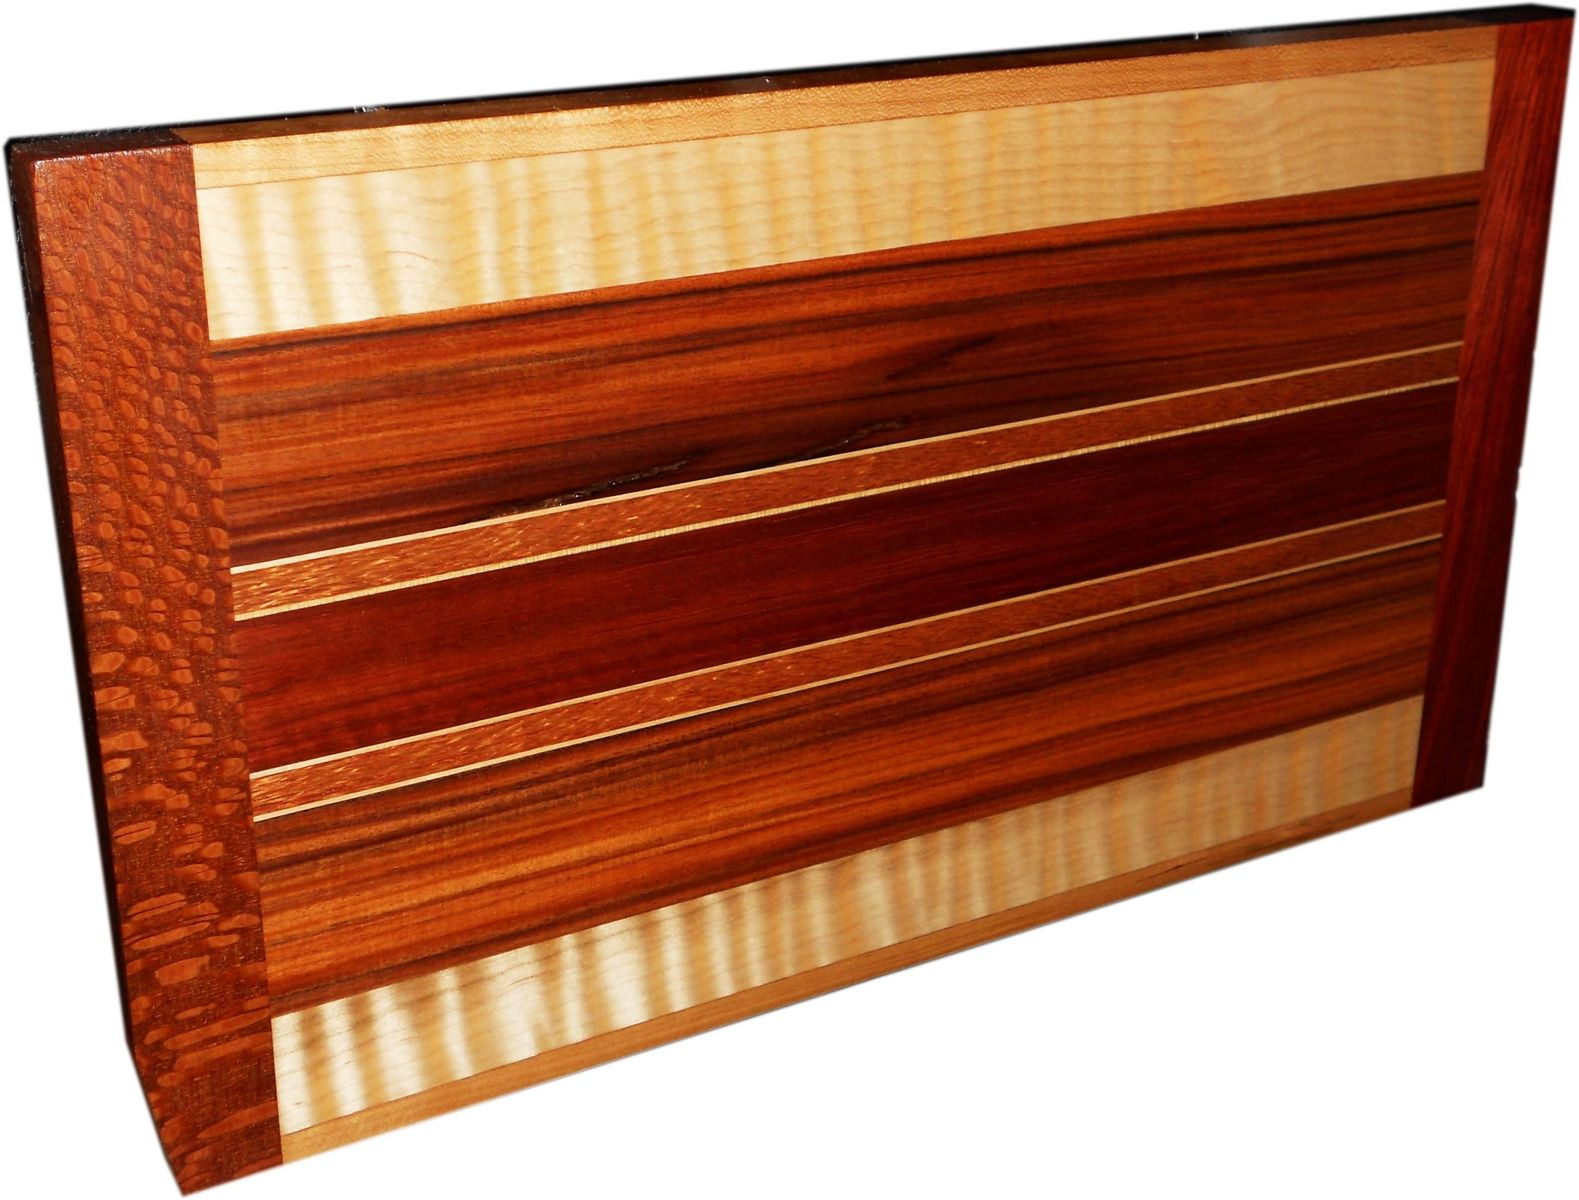 Uncategorized Custom Wooden Cutting Boards buy a hand made exotic wood cutting board double sided to custom sided